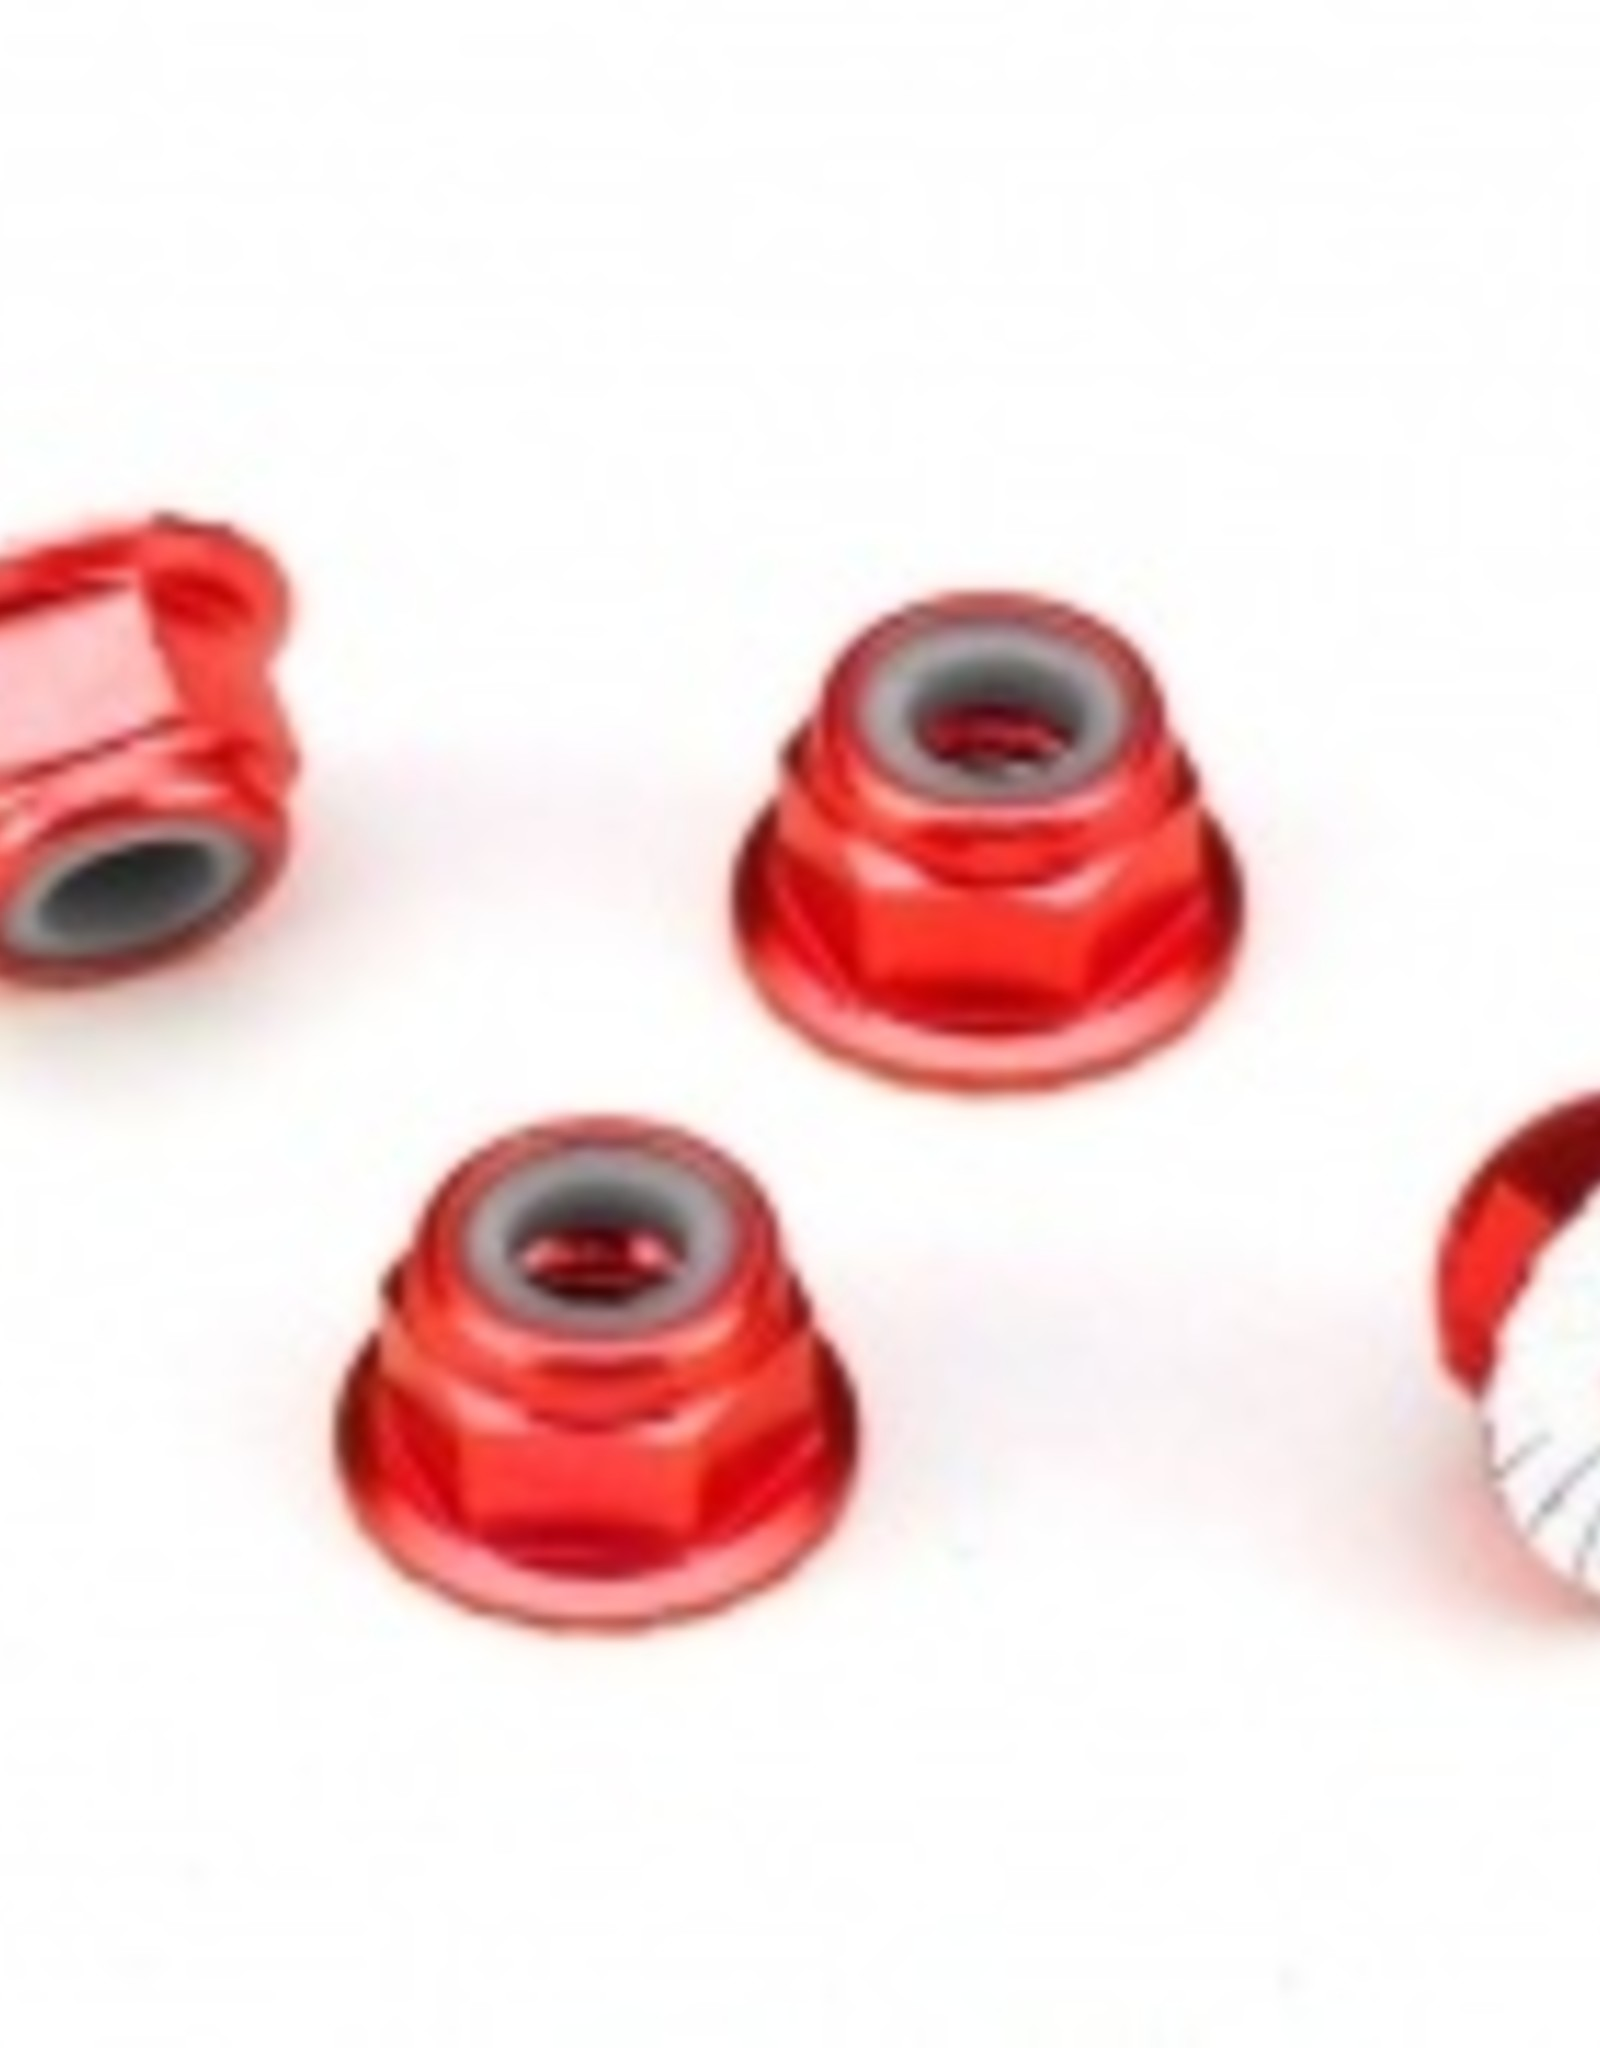 Traxxas Traxxas  Nuts, aluminum, flanged, serrated (4mm) (red-anodized) (4) TRA1747A